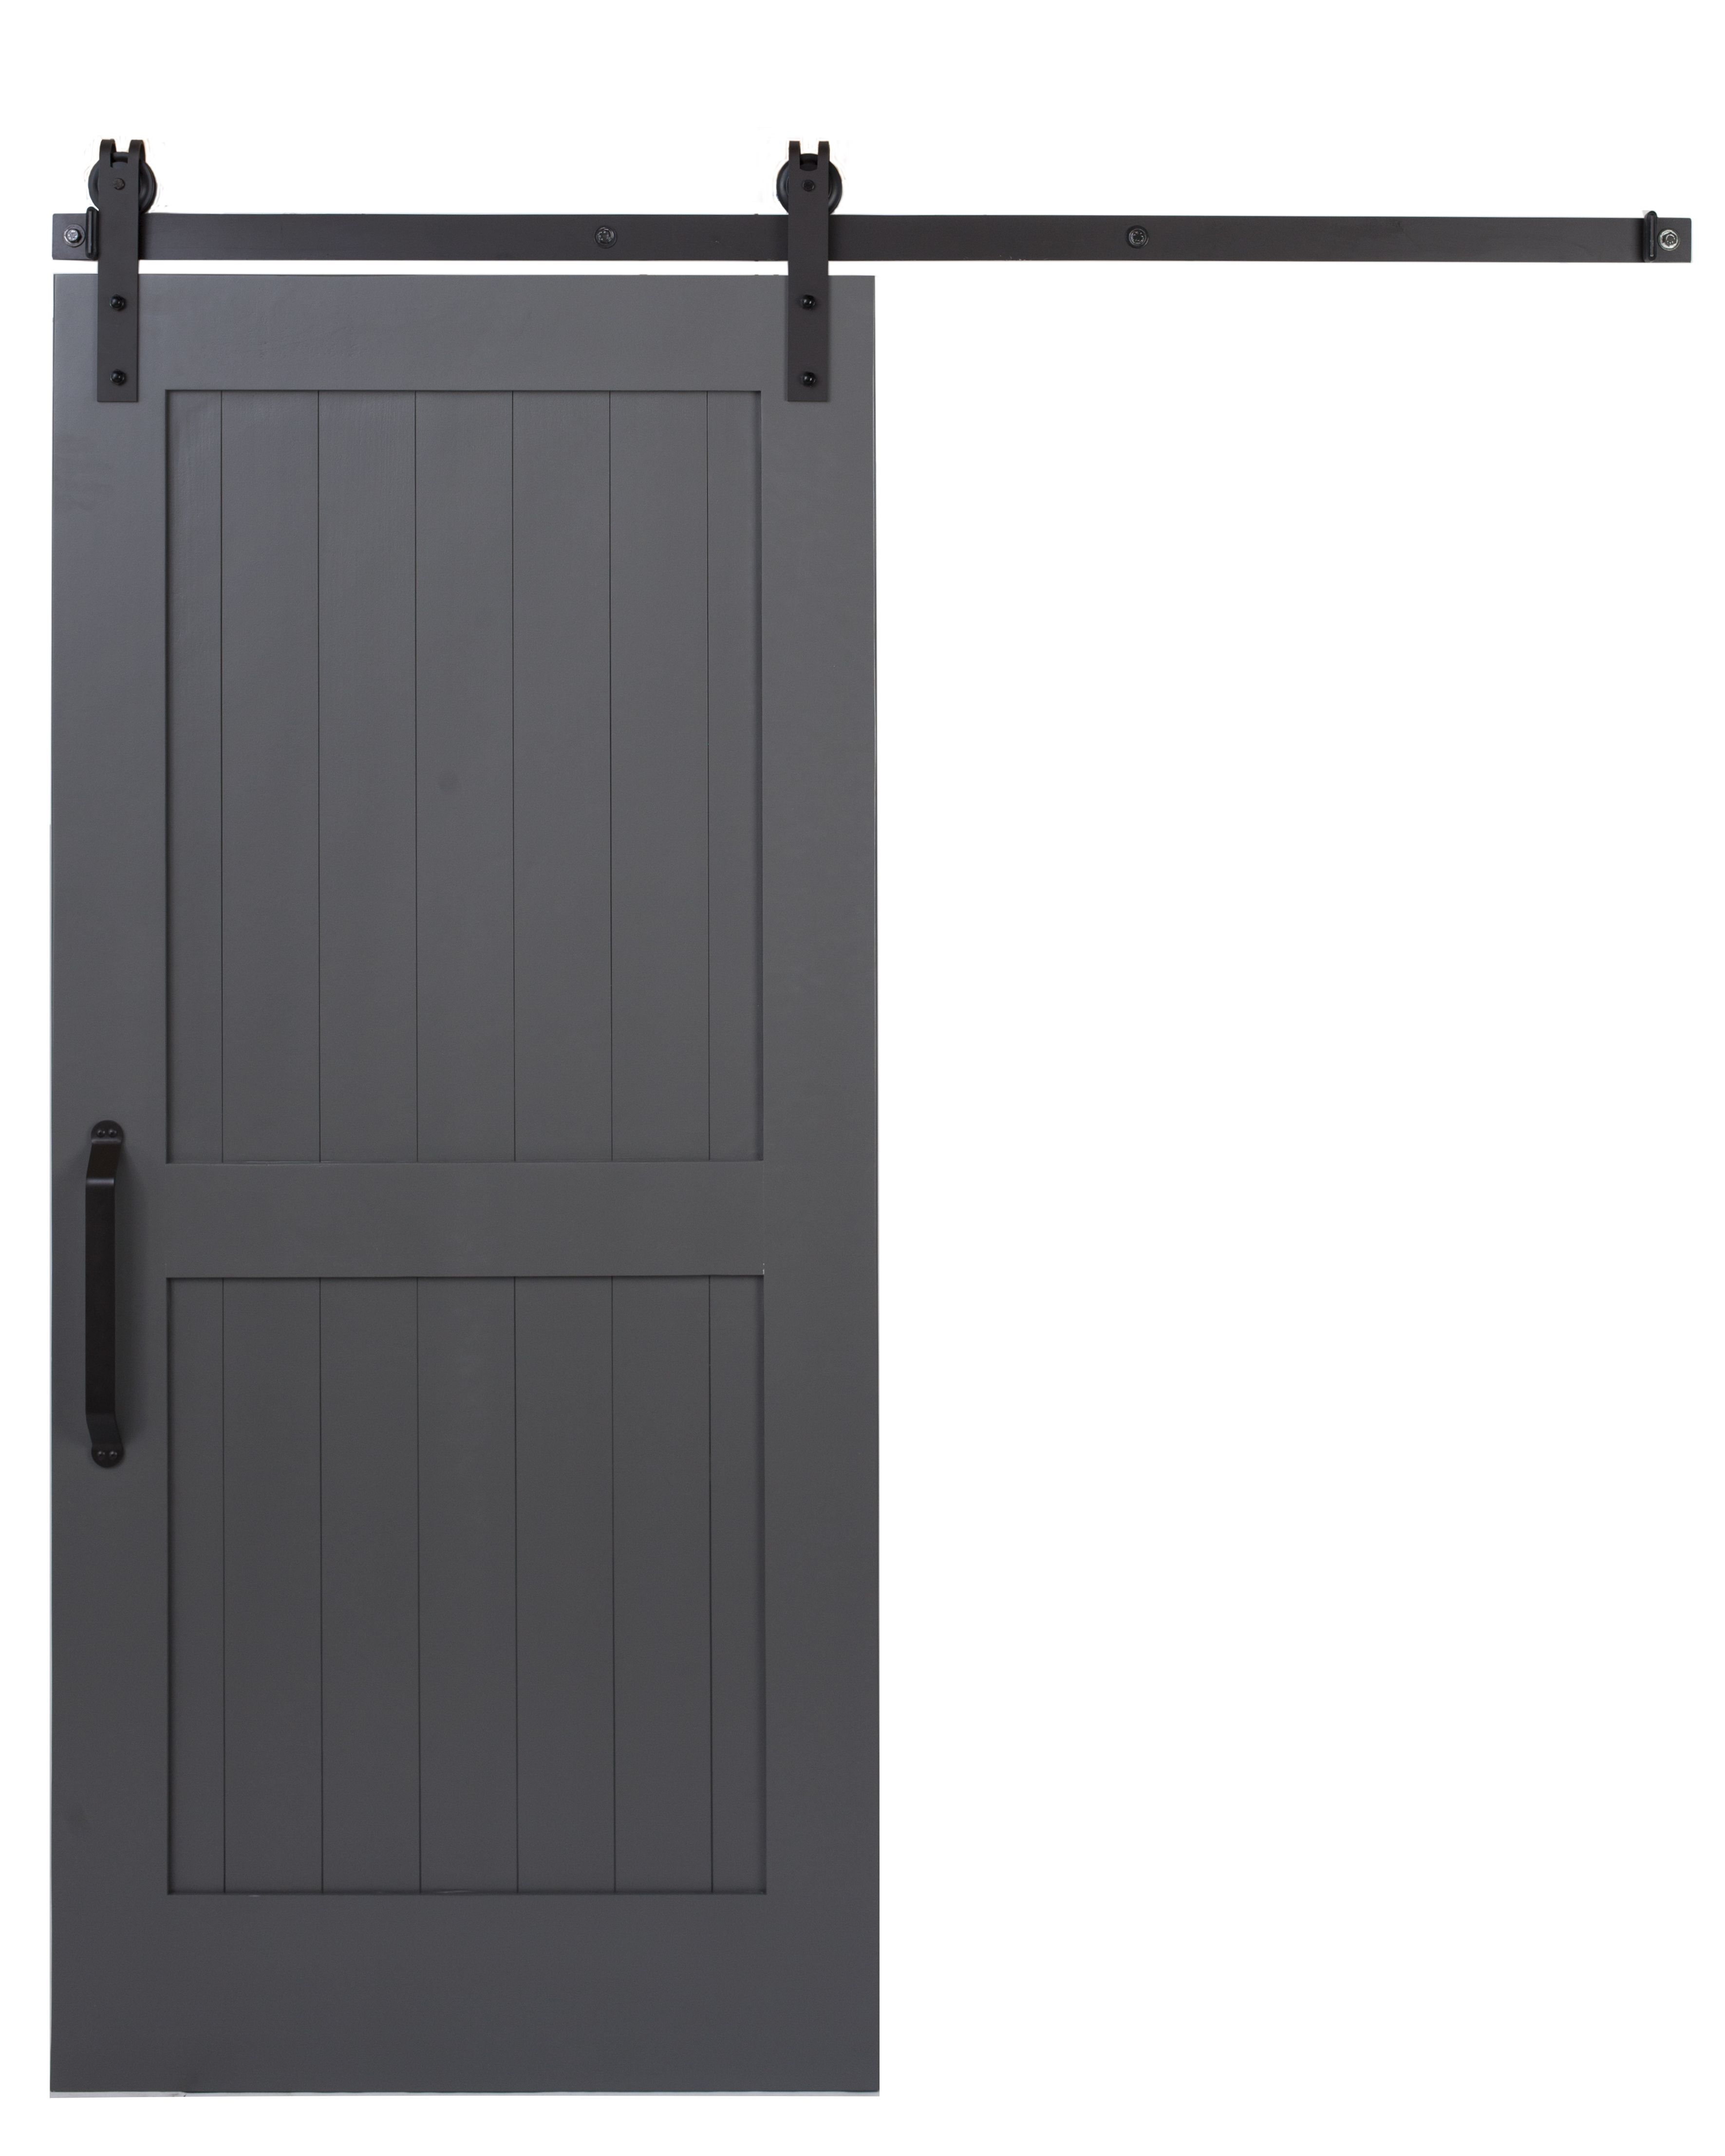 live door interior track hardware the sliding barn products kits you to want design life